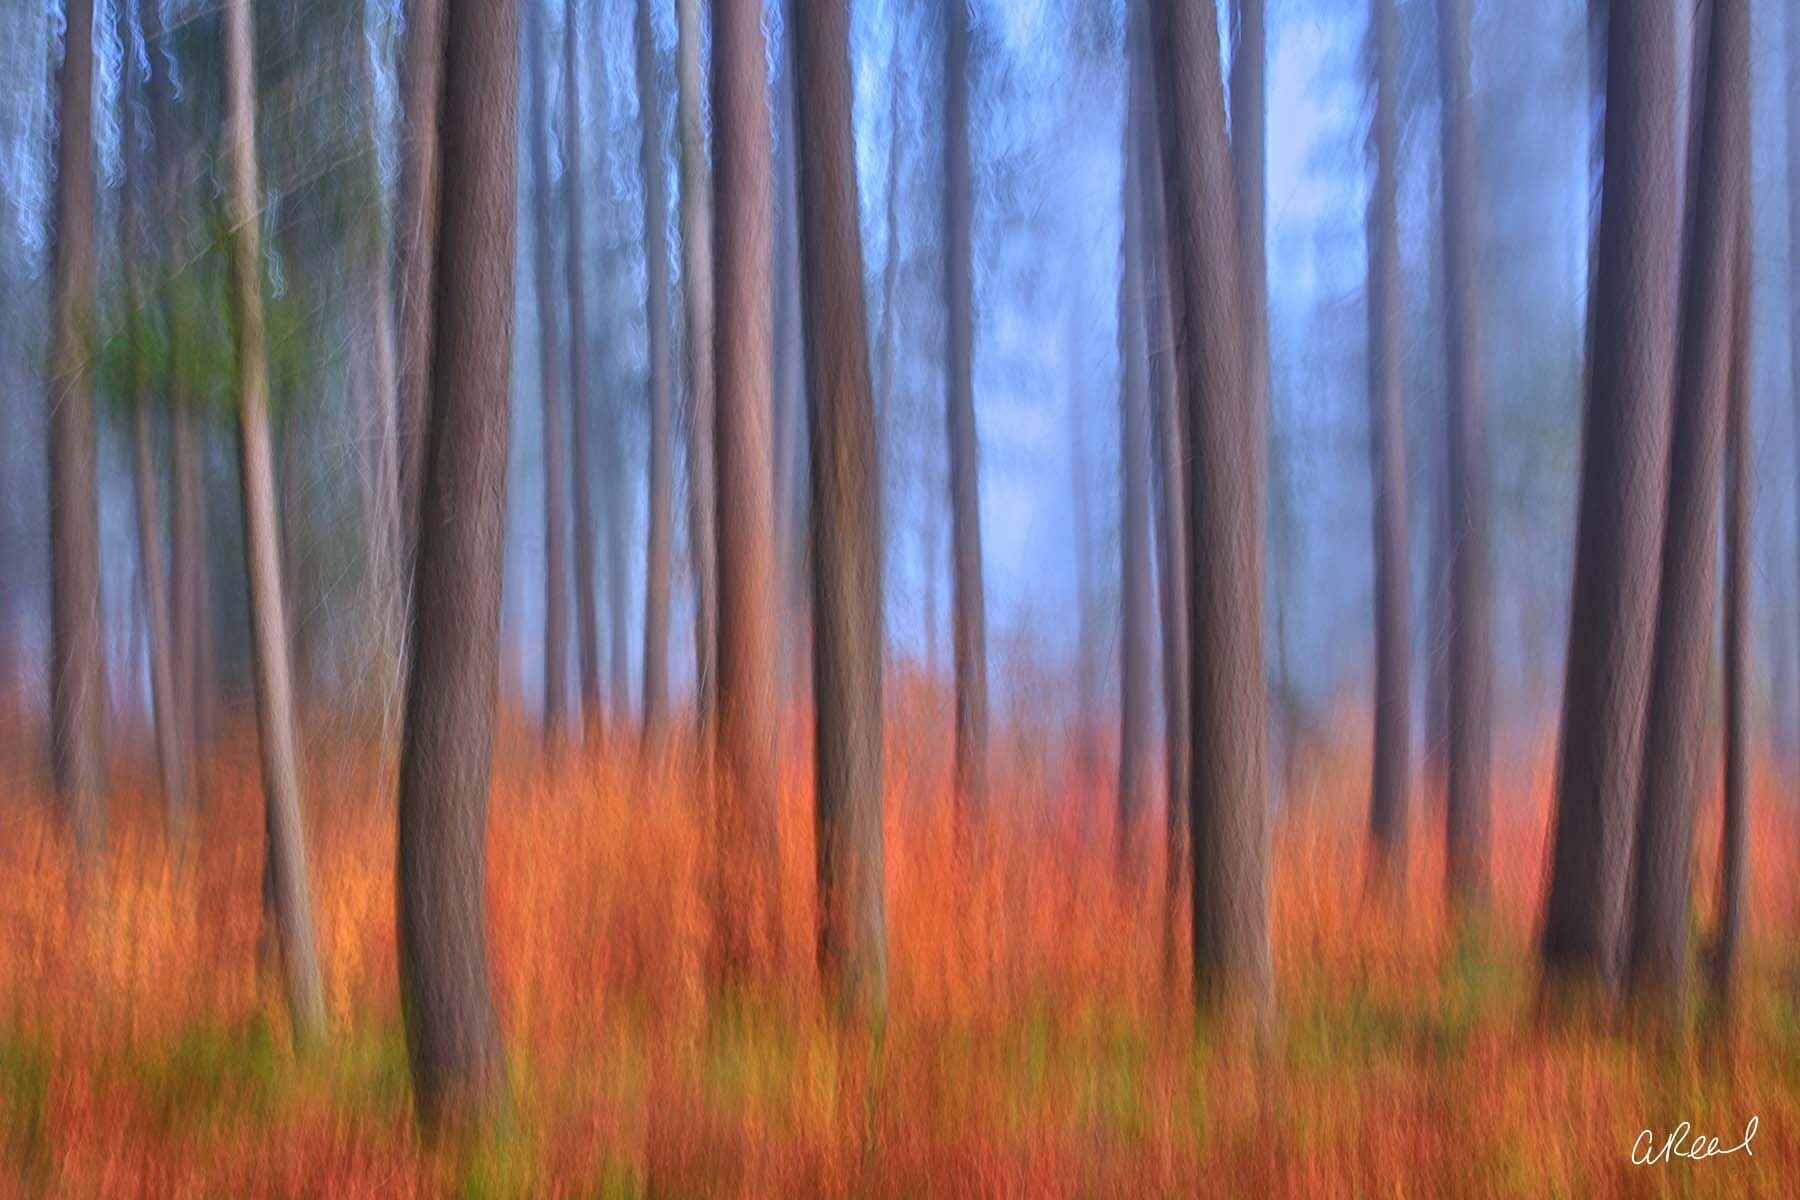 A blurred image of a forest of trees on a foggy morning.